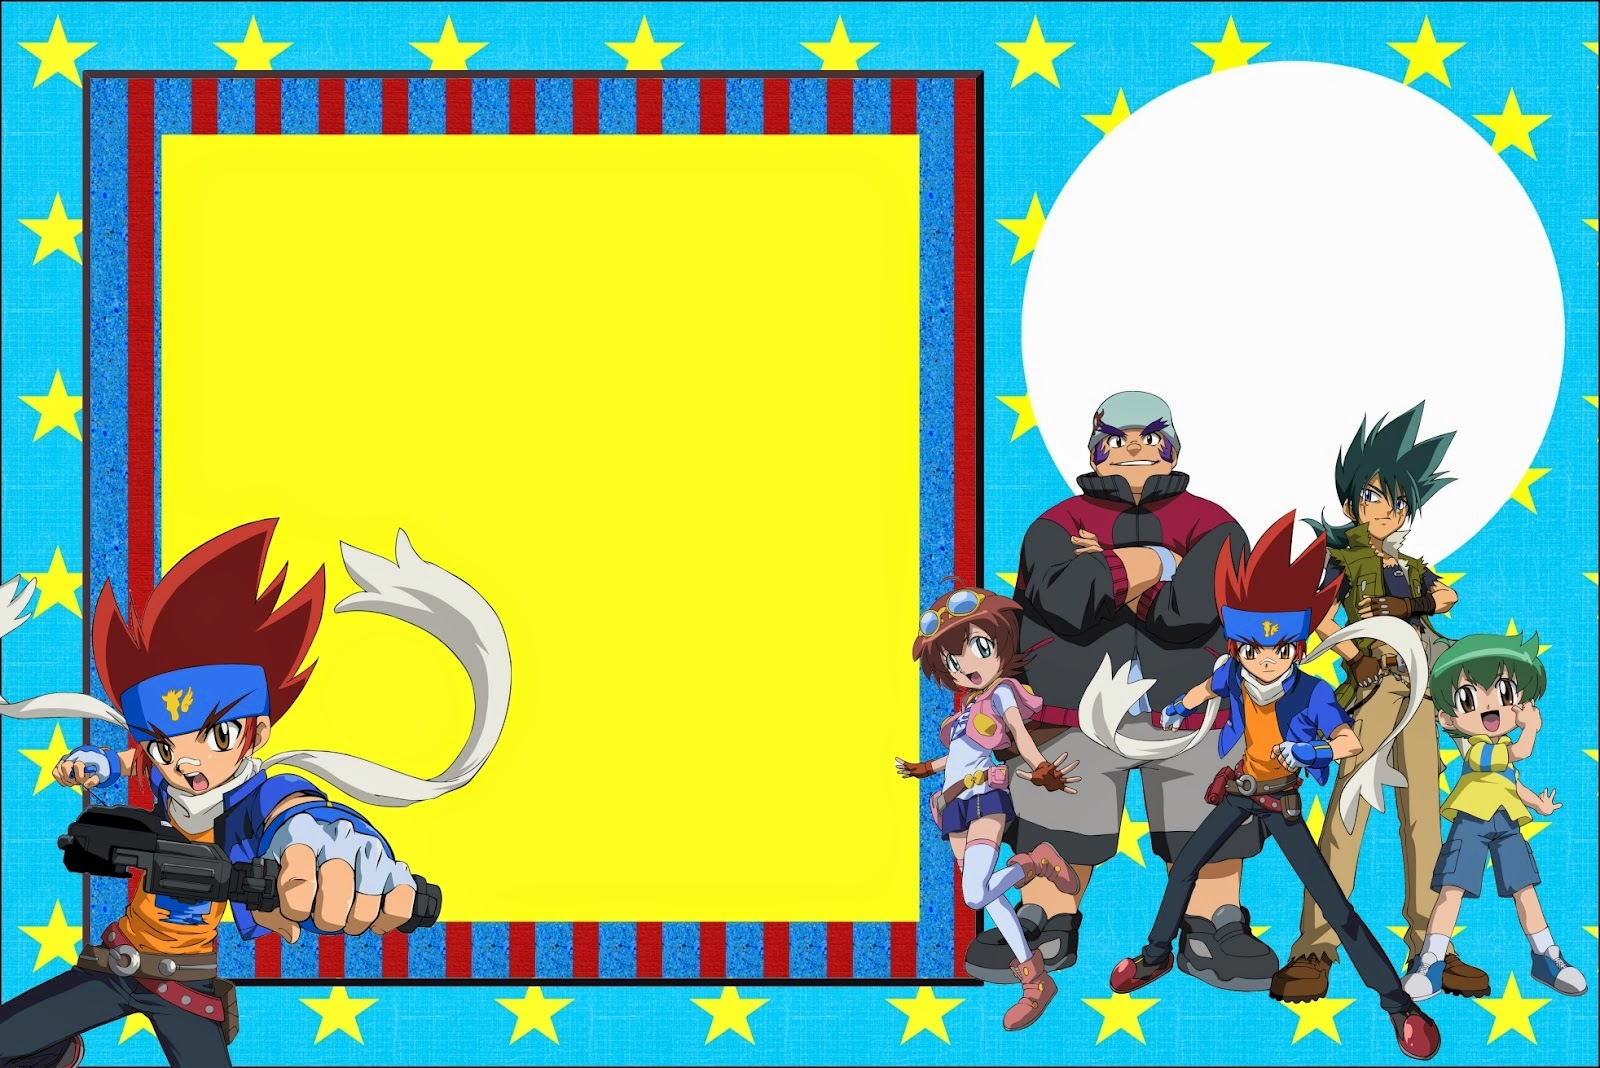 Beyblade Free Printable Invitations Oh My Fiesta for Geeks